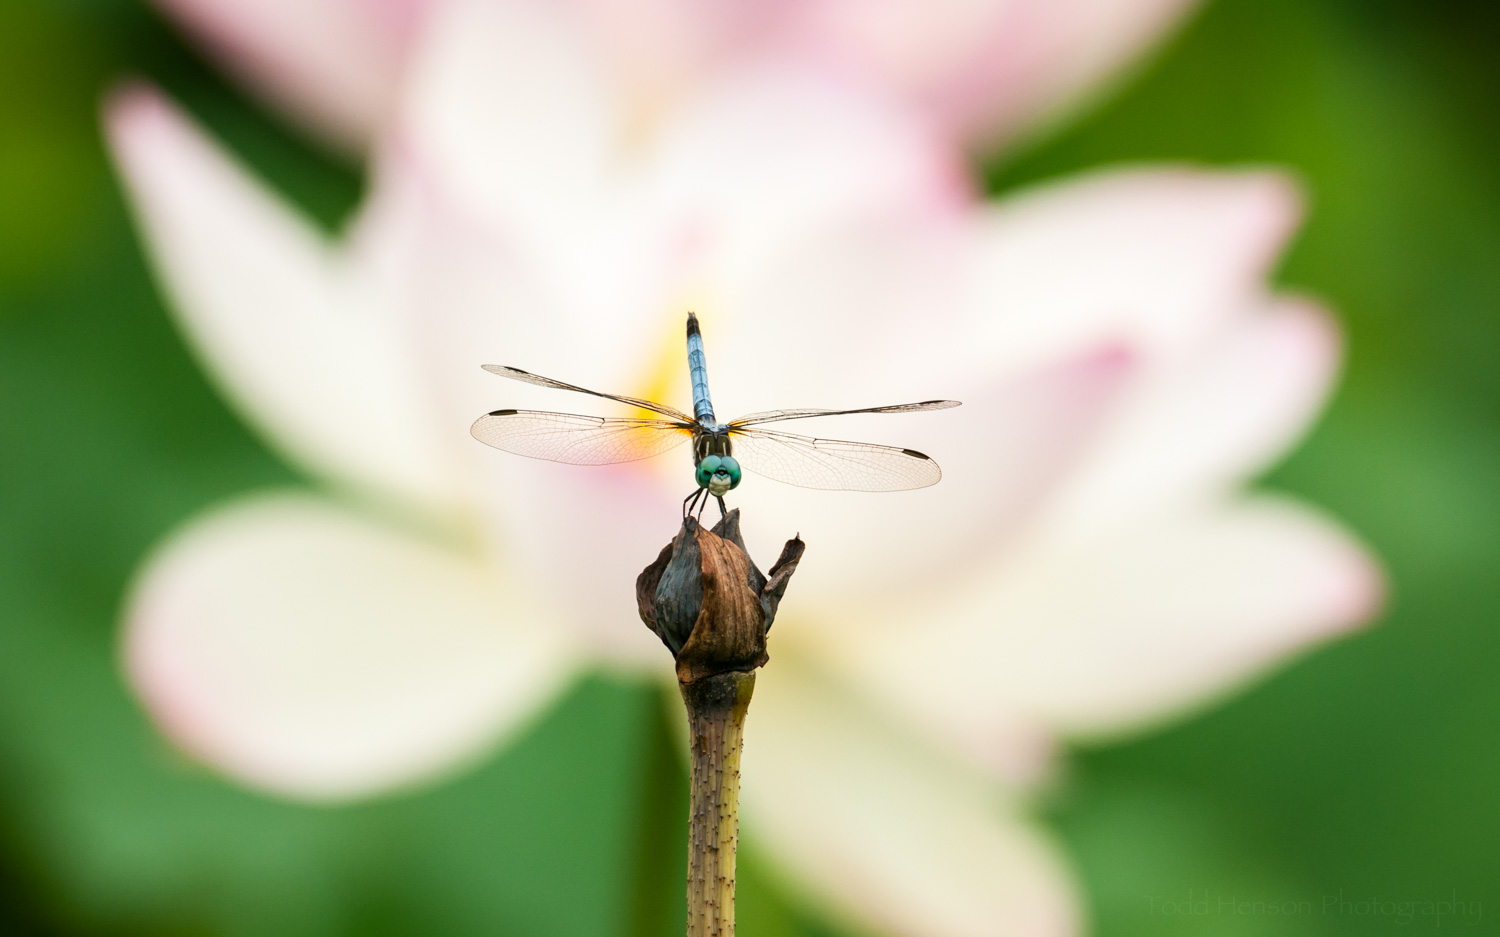 Dragonfly with lotus blossom in the background